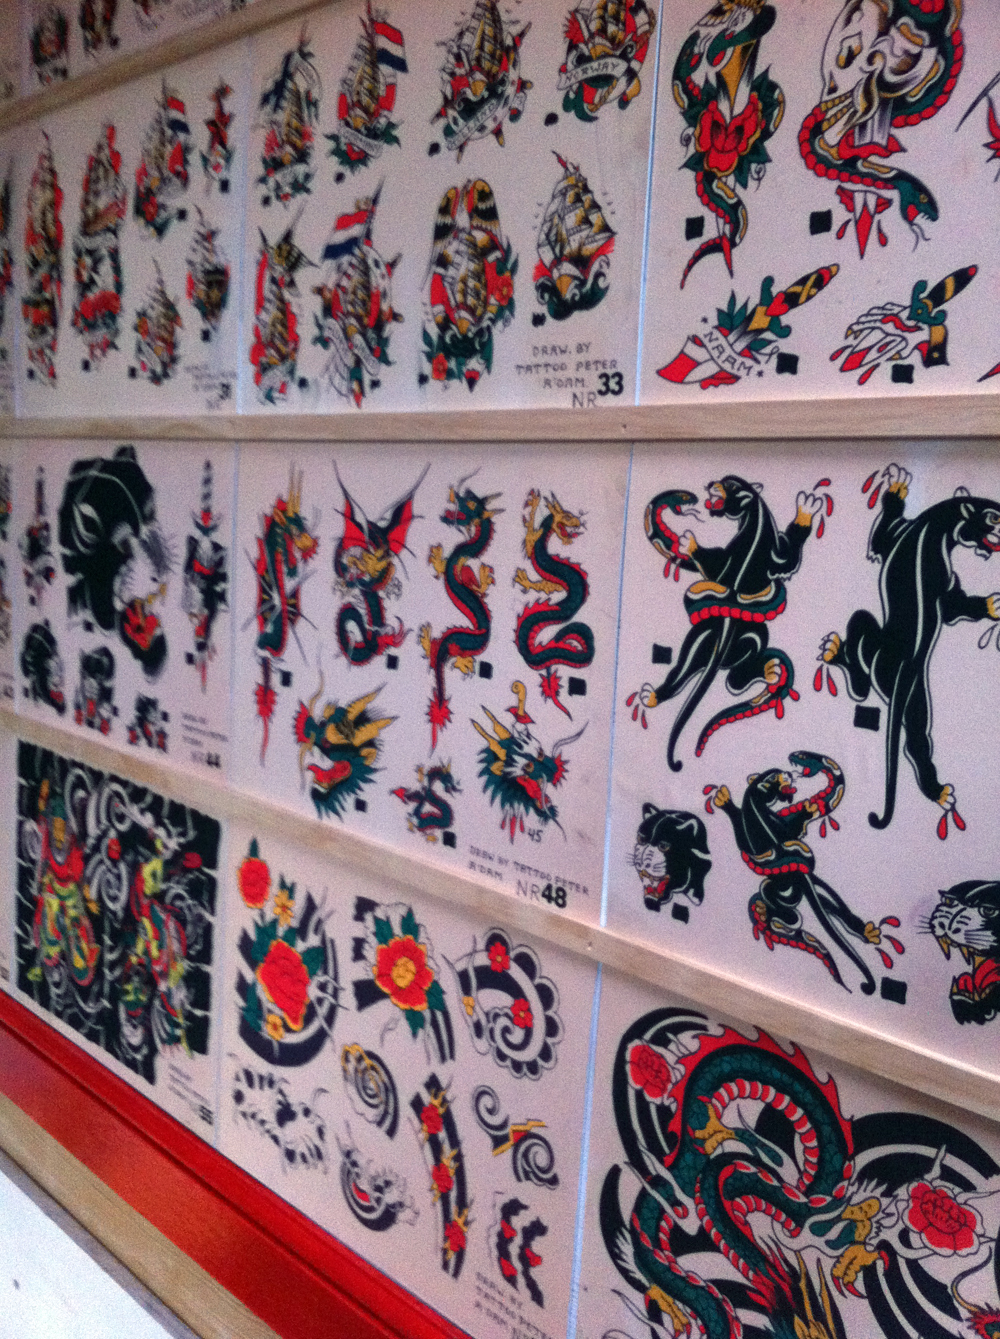 First Look Inside The New Amsterdam Tattoo Museum Tattoo